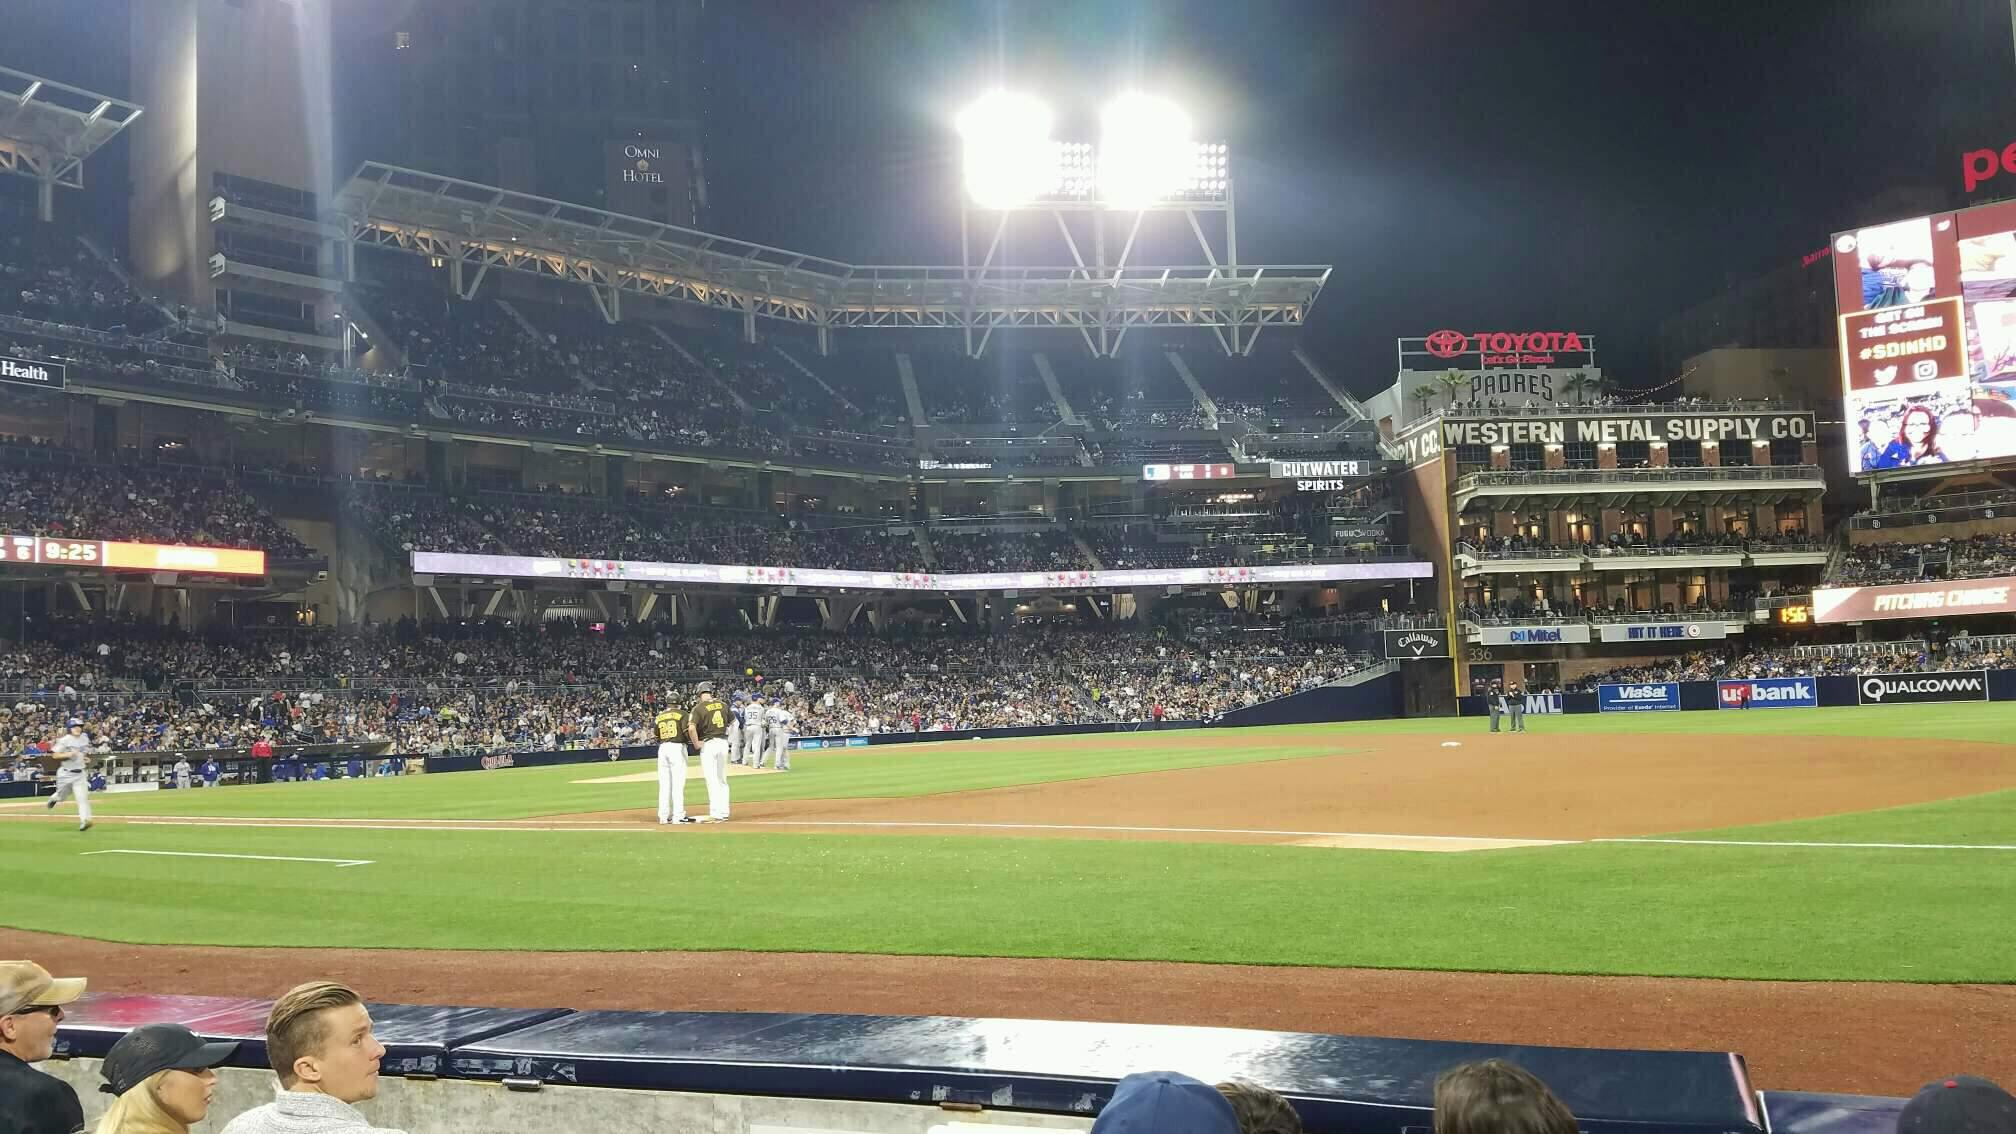 PETCO Park Section 113 Row 4 Seat 8